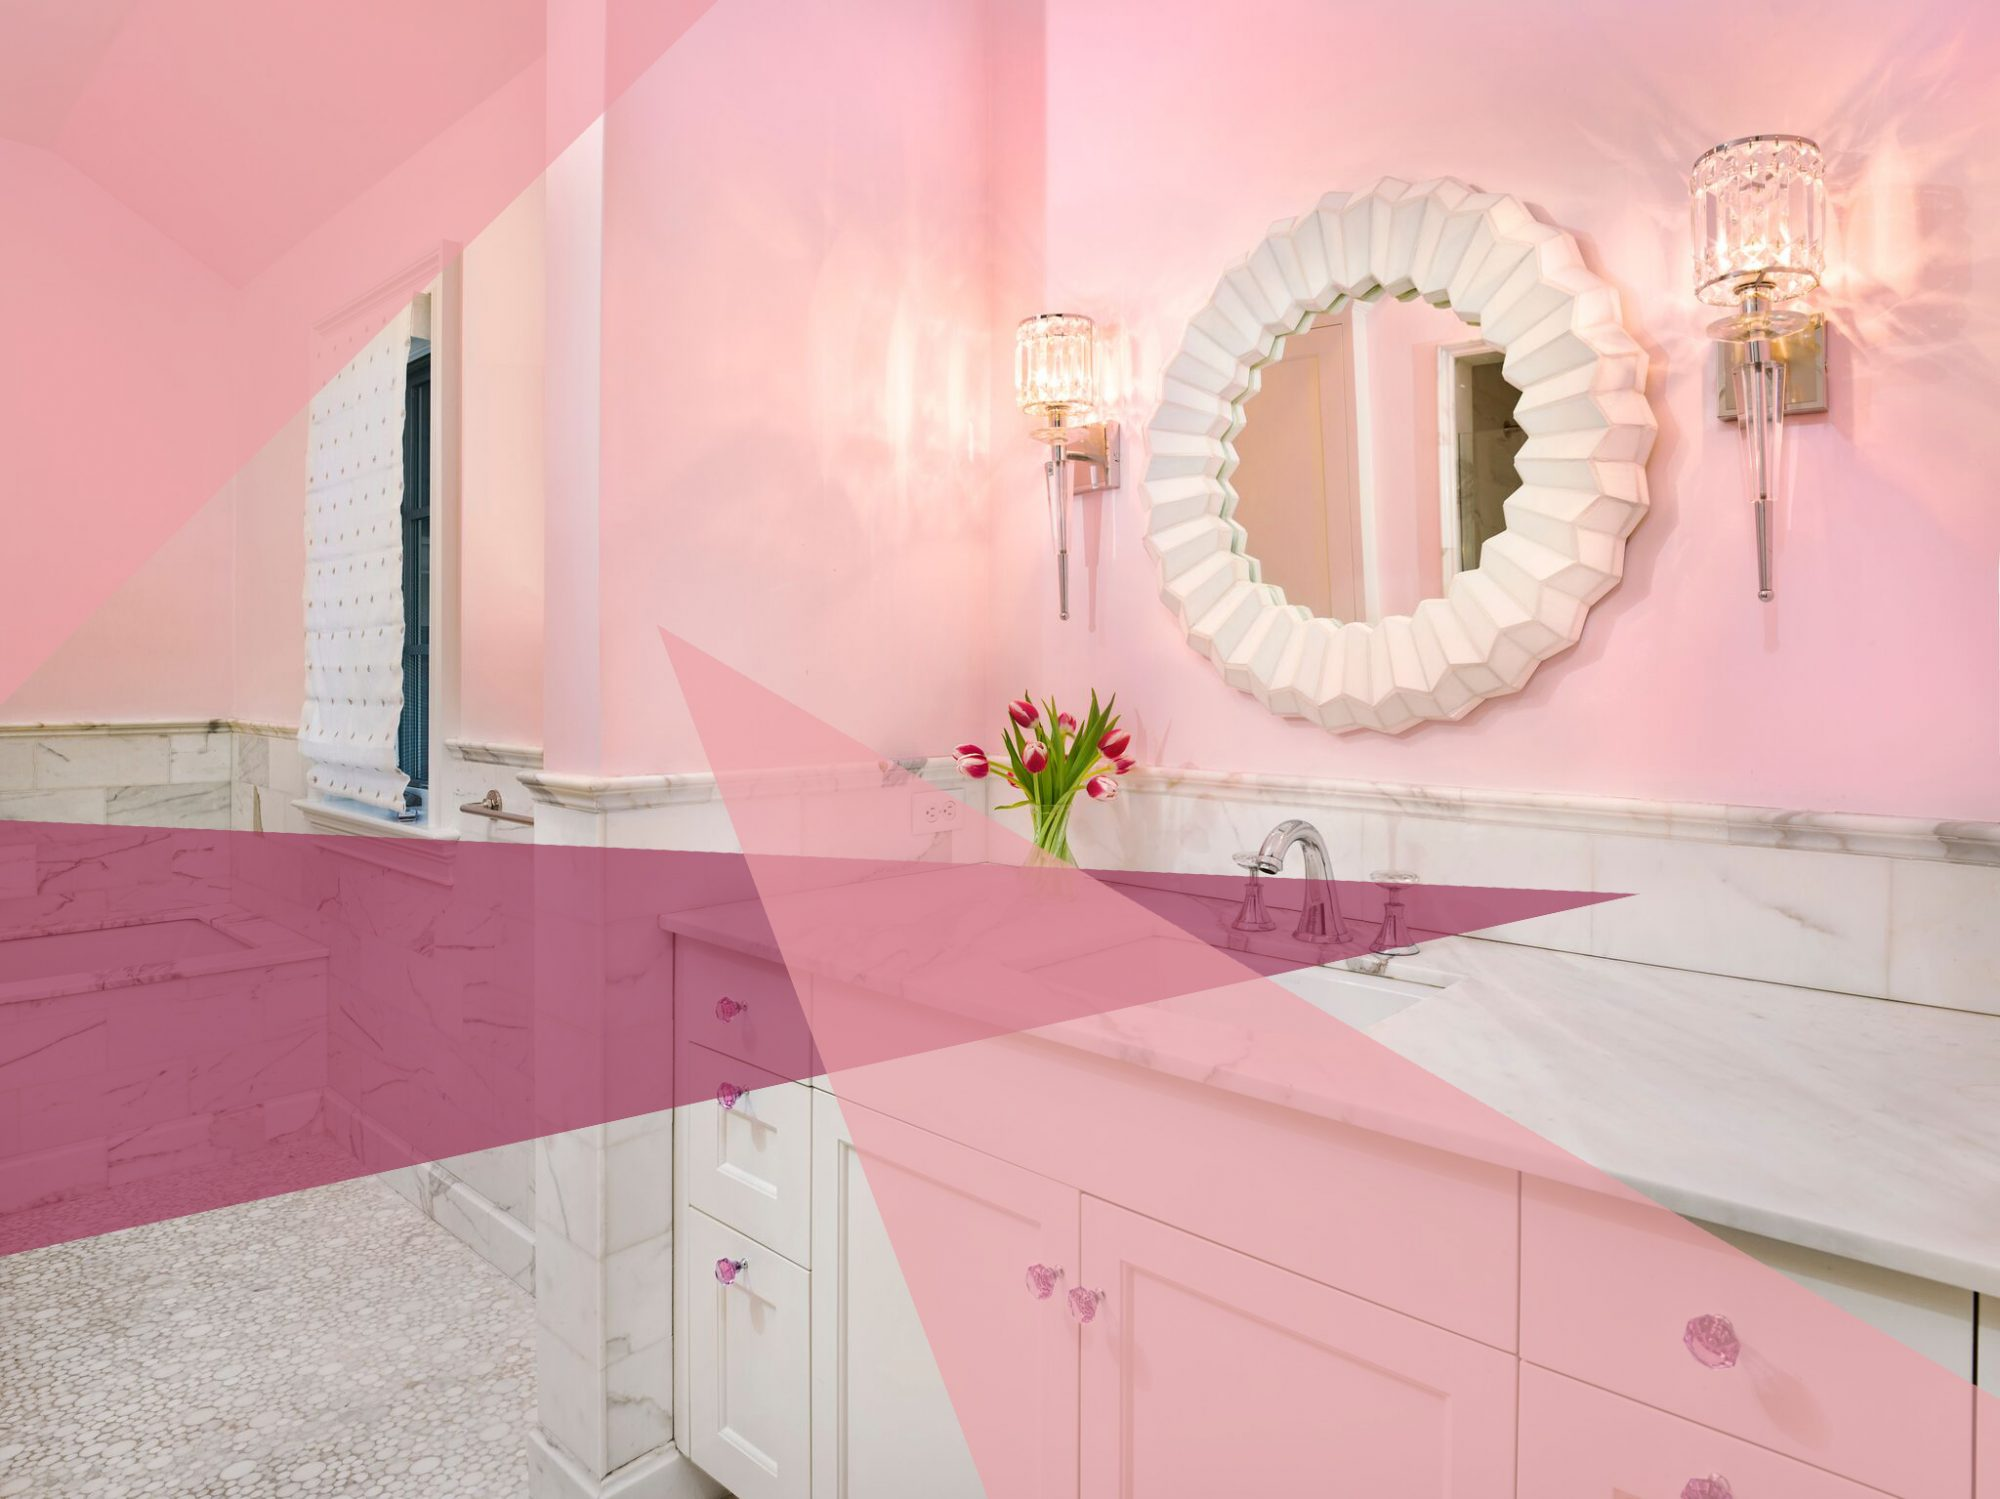 14 Best Bathroom Paint Colors According To Designers Real Simple,Types Of Window Coverings For Sliding Glass Doors